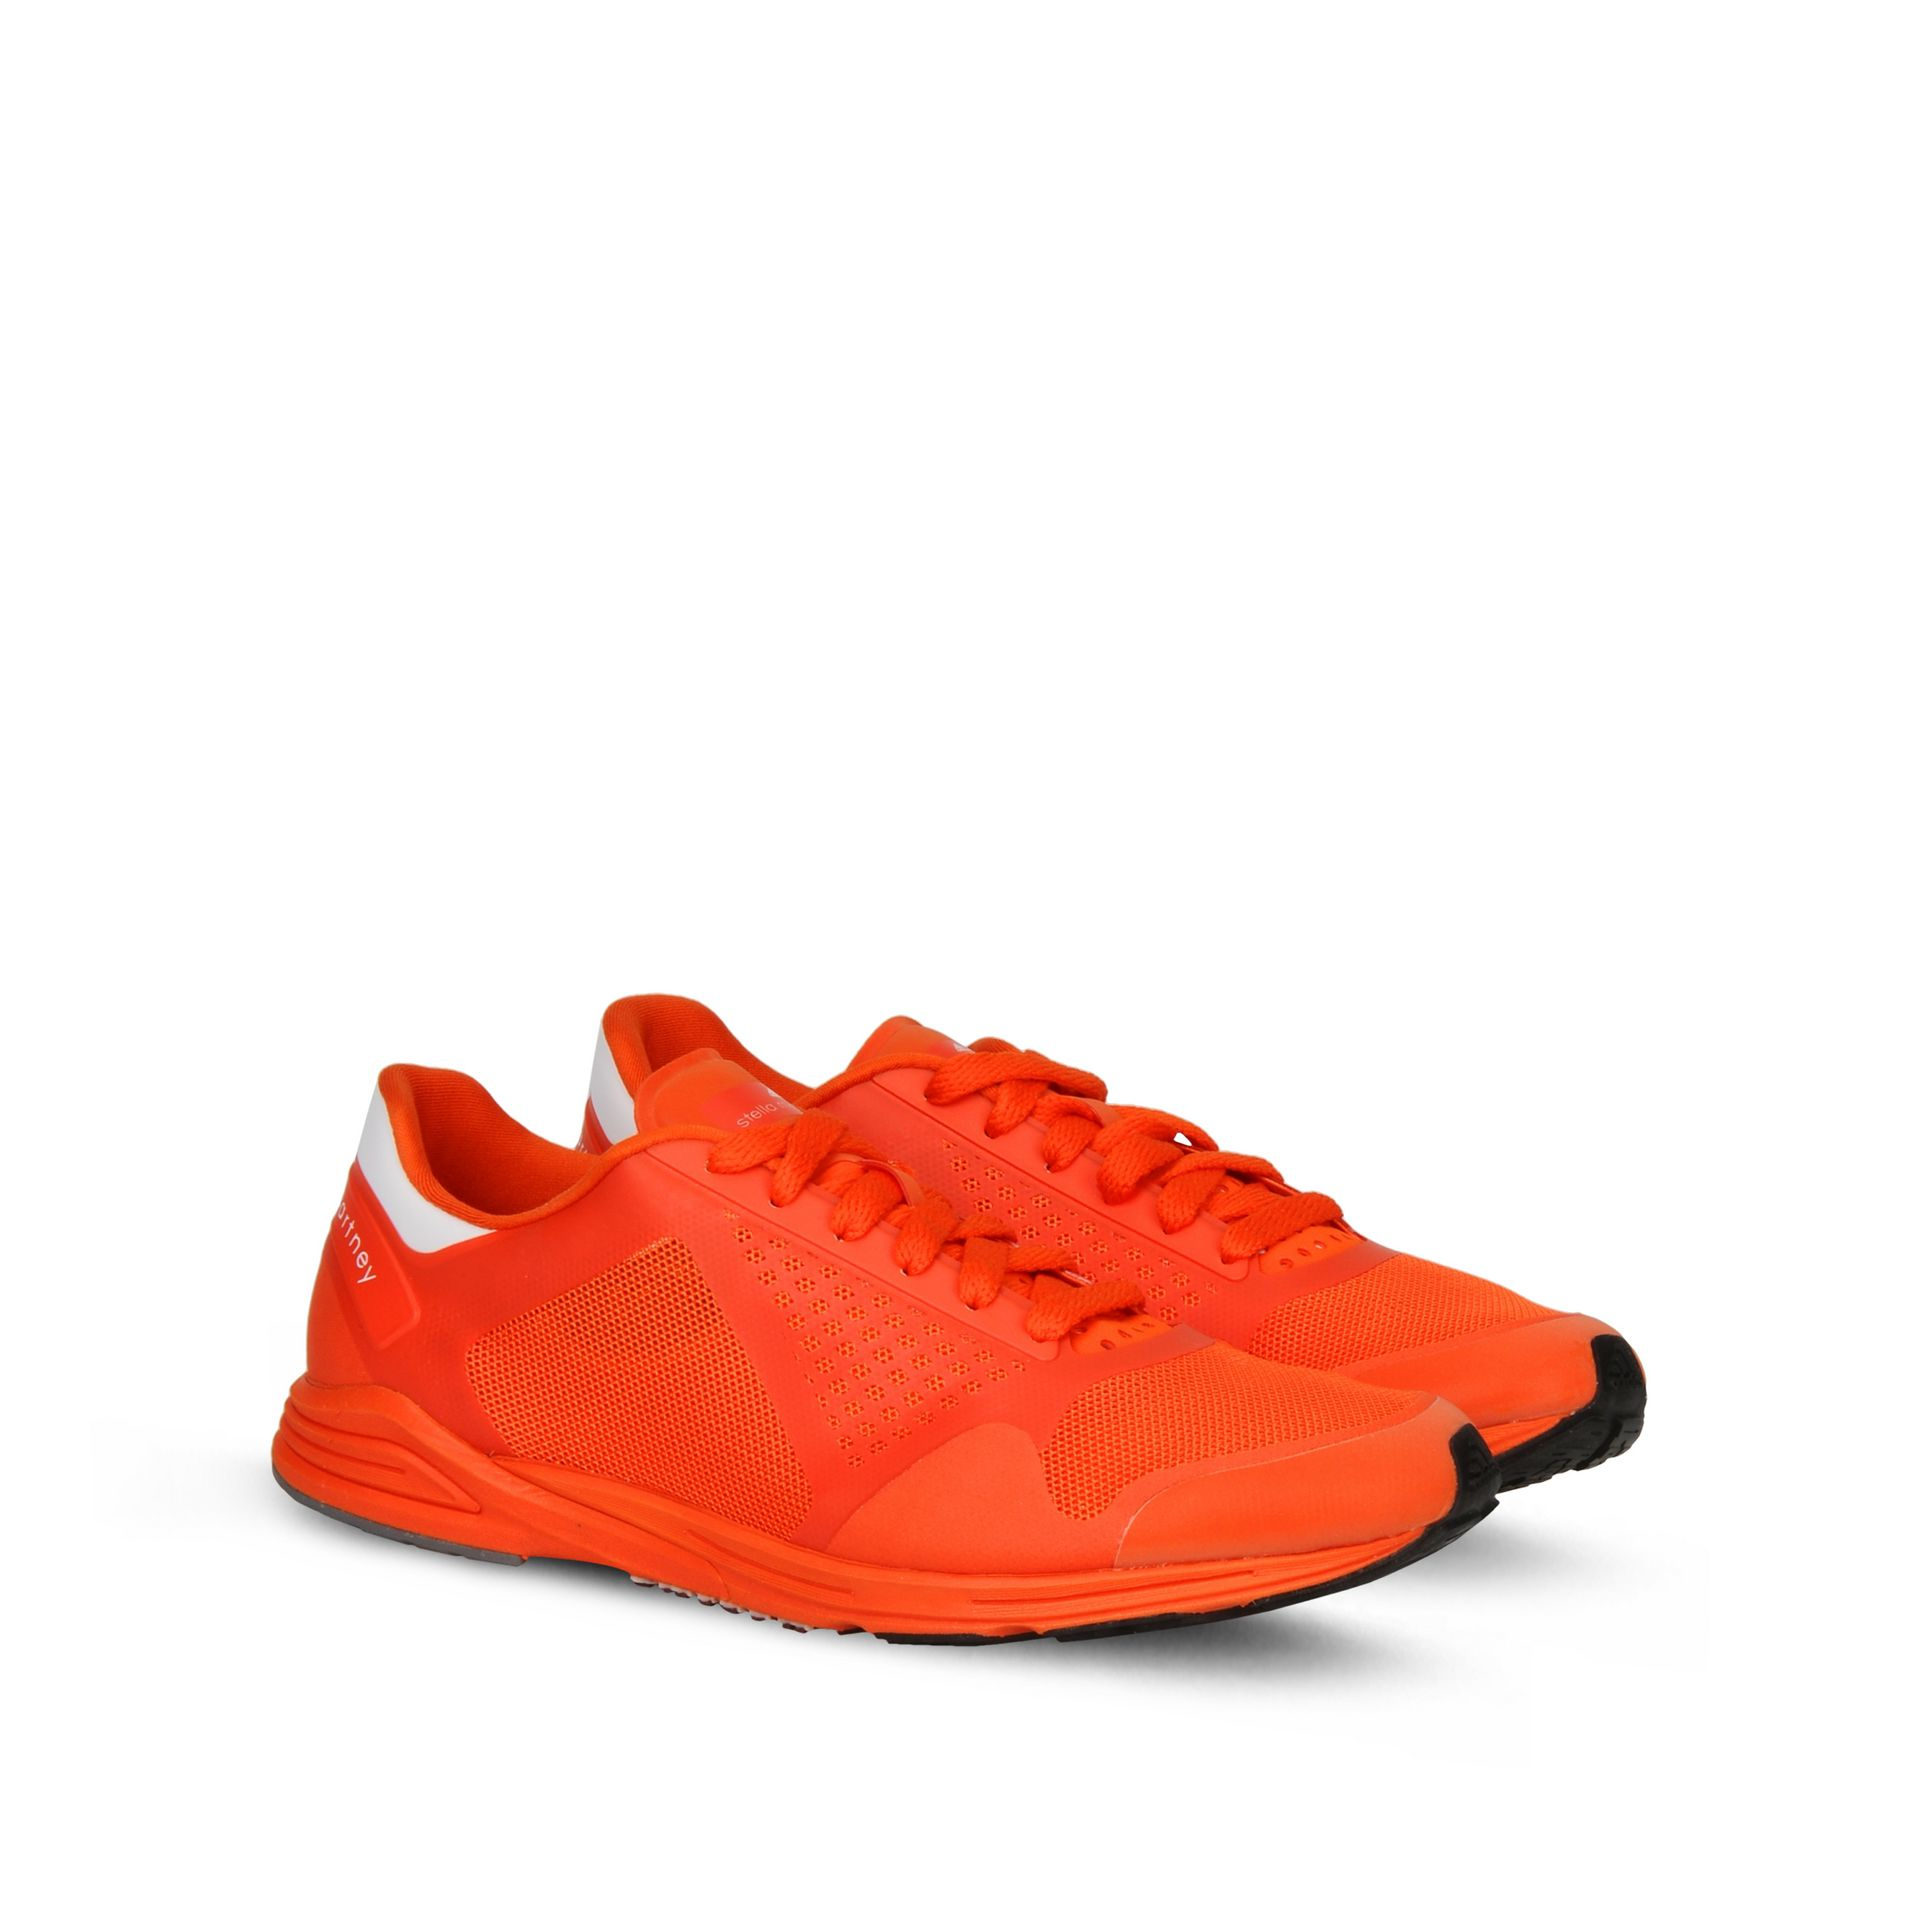 reputable site 34fec 06a16 Lyst - adidas By Stella McCartney Orange Adizero Racing Running ...